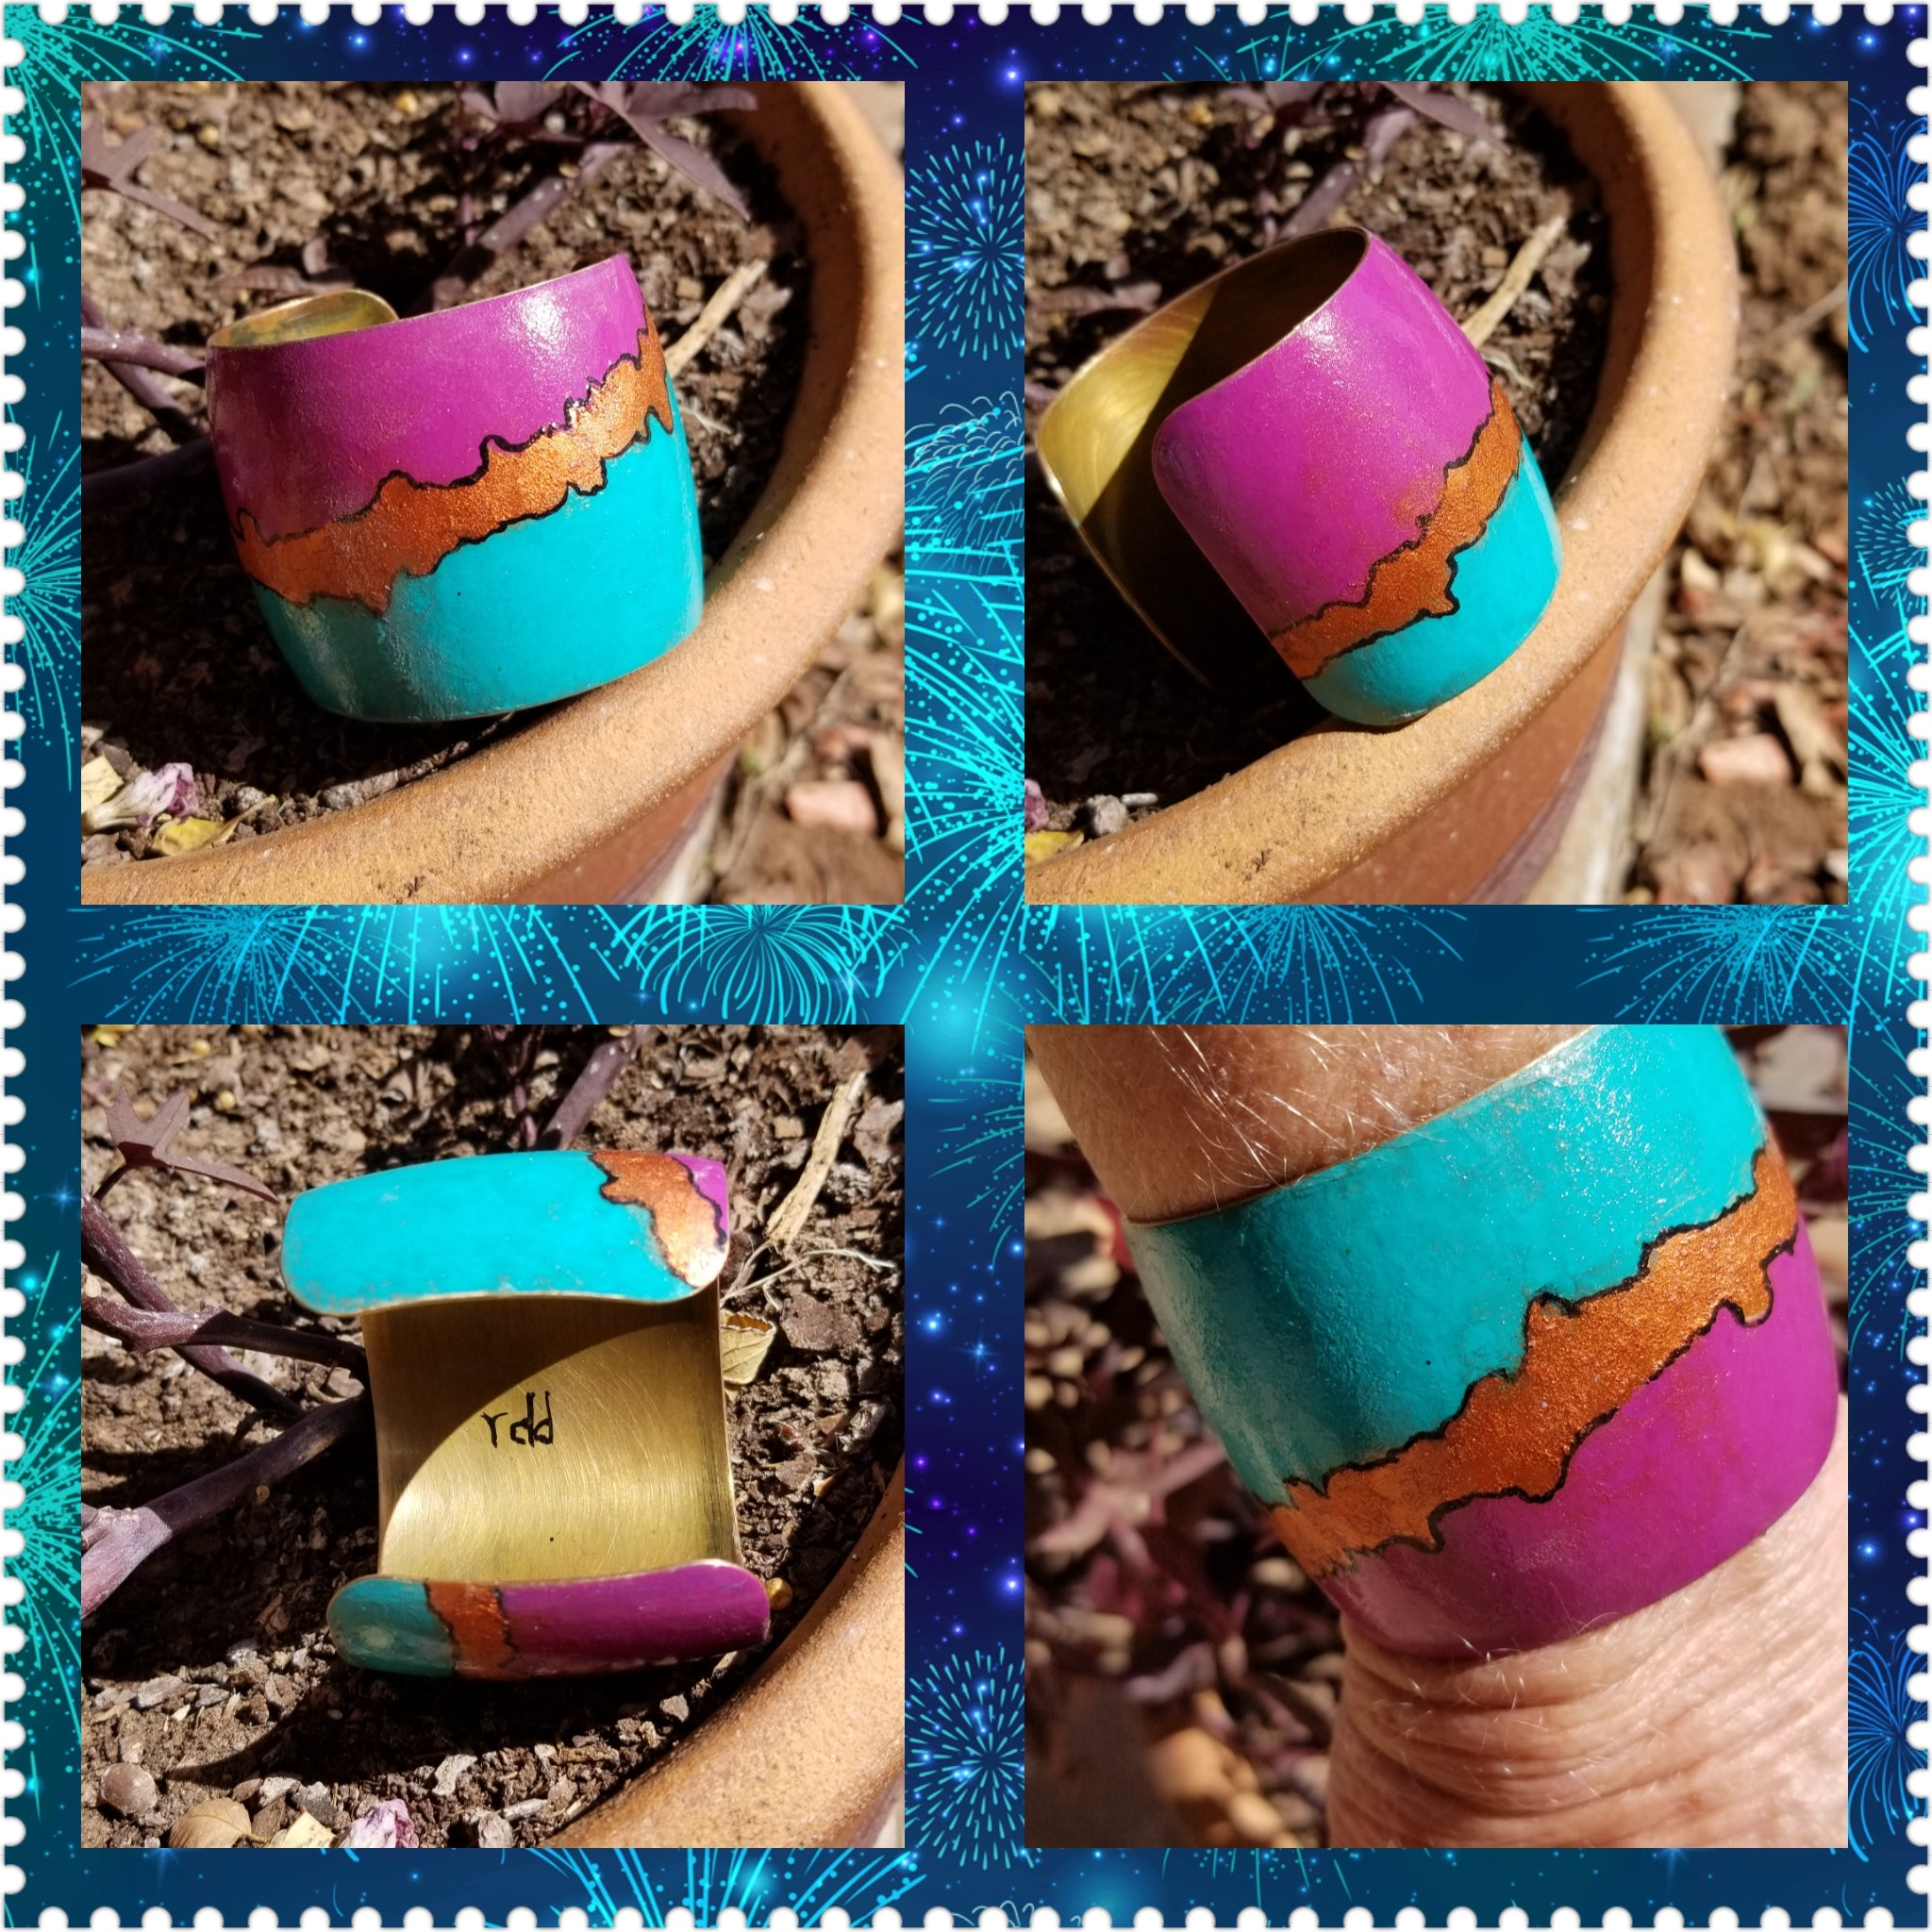 B36. Geometric Palette  - turquoise jewelry - purple jewelry - urban warrior cuff - everyday turquoise contemporary jewelry design